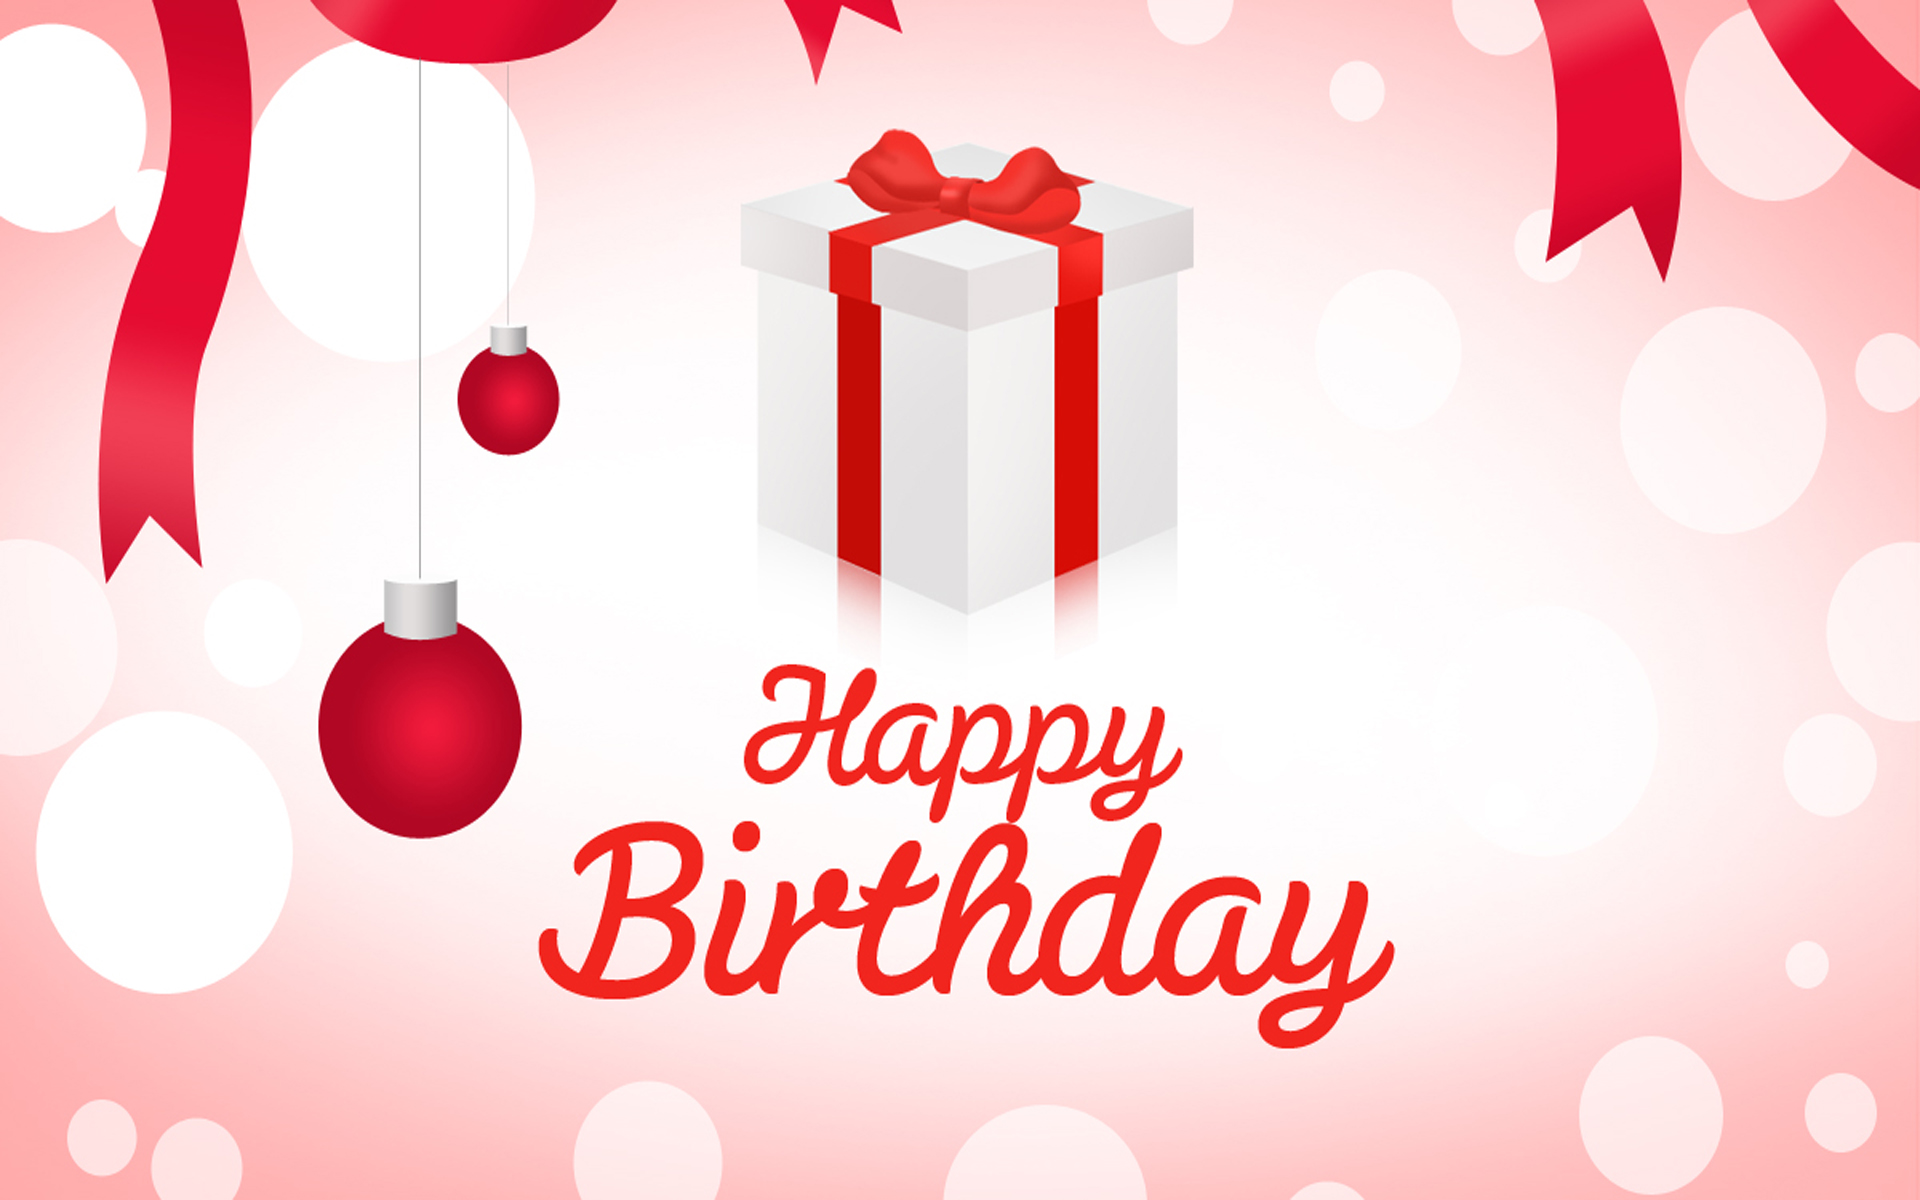 10 Best Happy Birthday Wishes with Images - Quotes Square